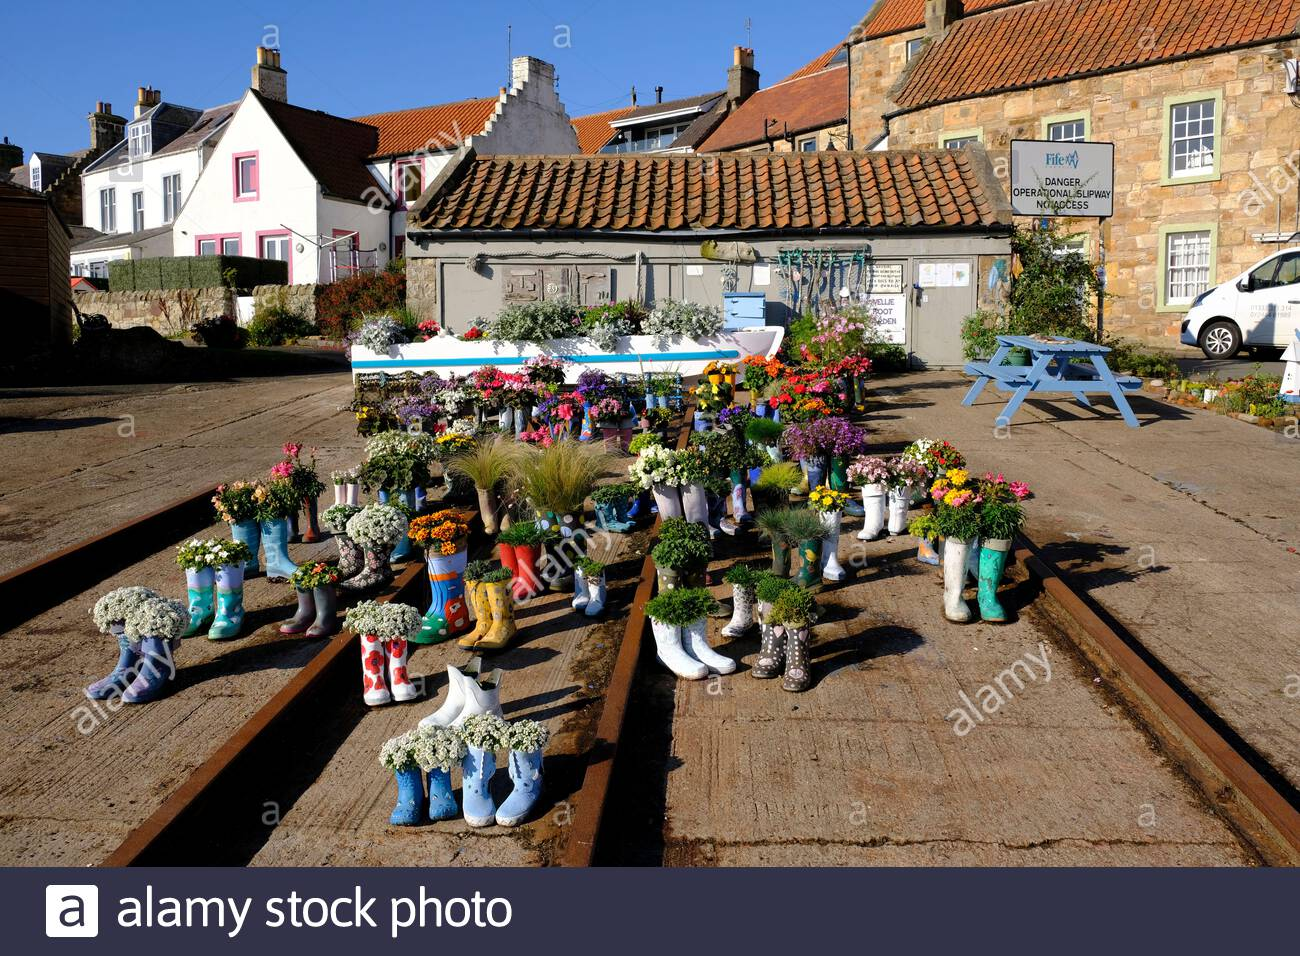 St Monan's, Scotland, UK. 2nd Oct 2020. Fine sunny weather at the Welly Boot Garden in St Monan's, Fife. The welly boot garden started out as part of the village's strategy to win Beautiful Fife and Beautiful Scotland awards and is now a visitor attraction in its own right.  Credit: Craig Brown/Alamy Live News Stock Photo